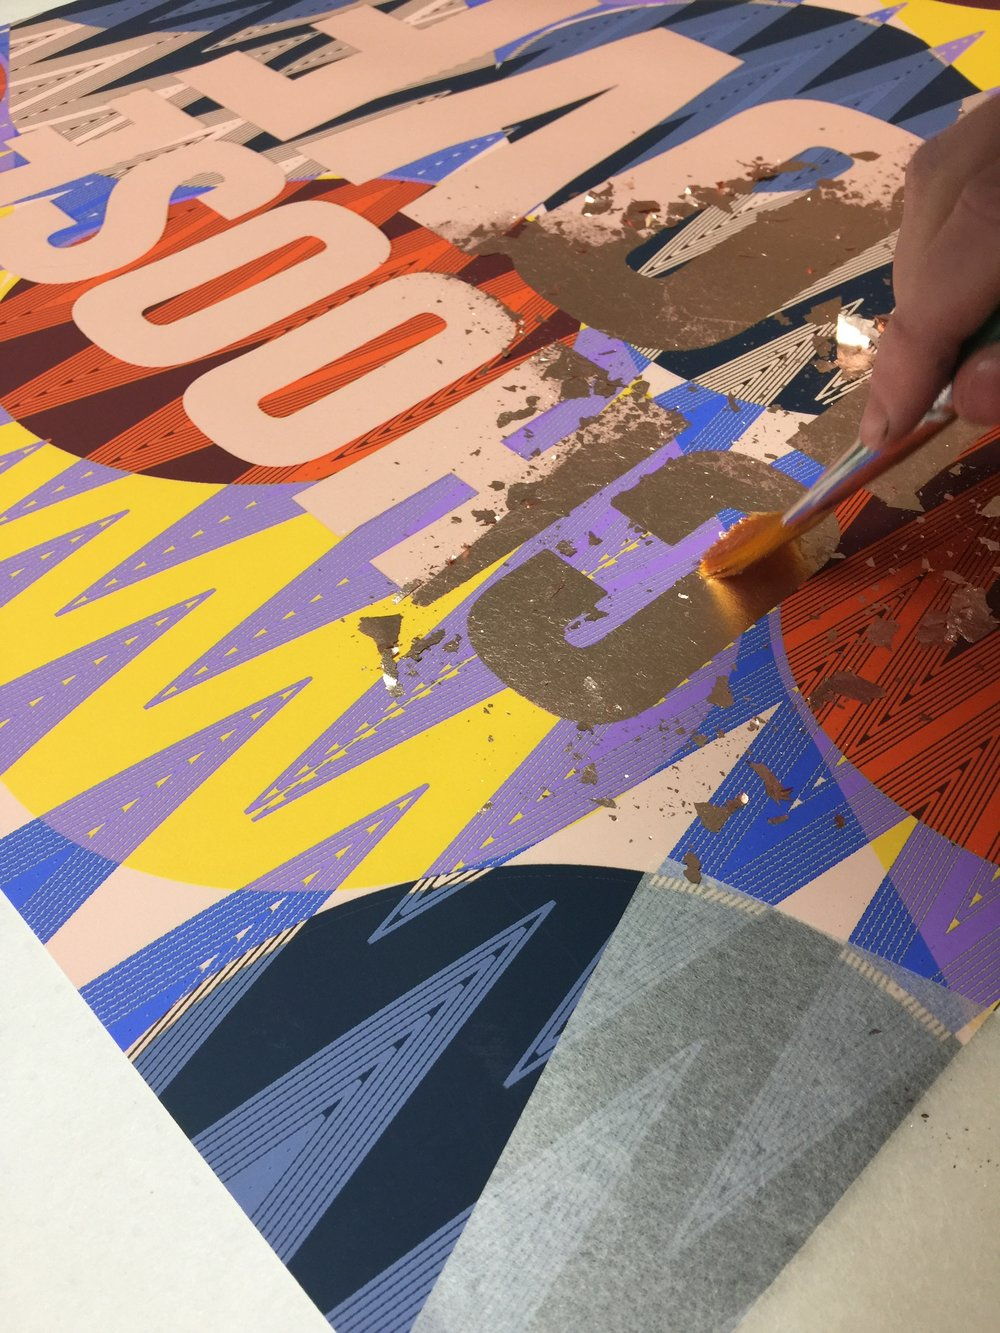 The foil being applied to screen printed glue, with a paint brush.